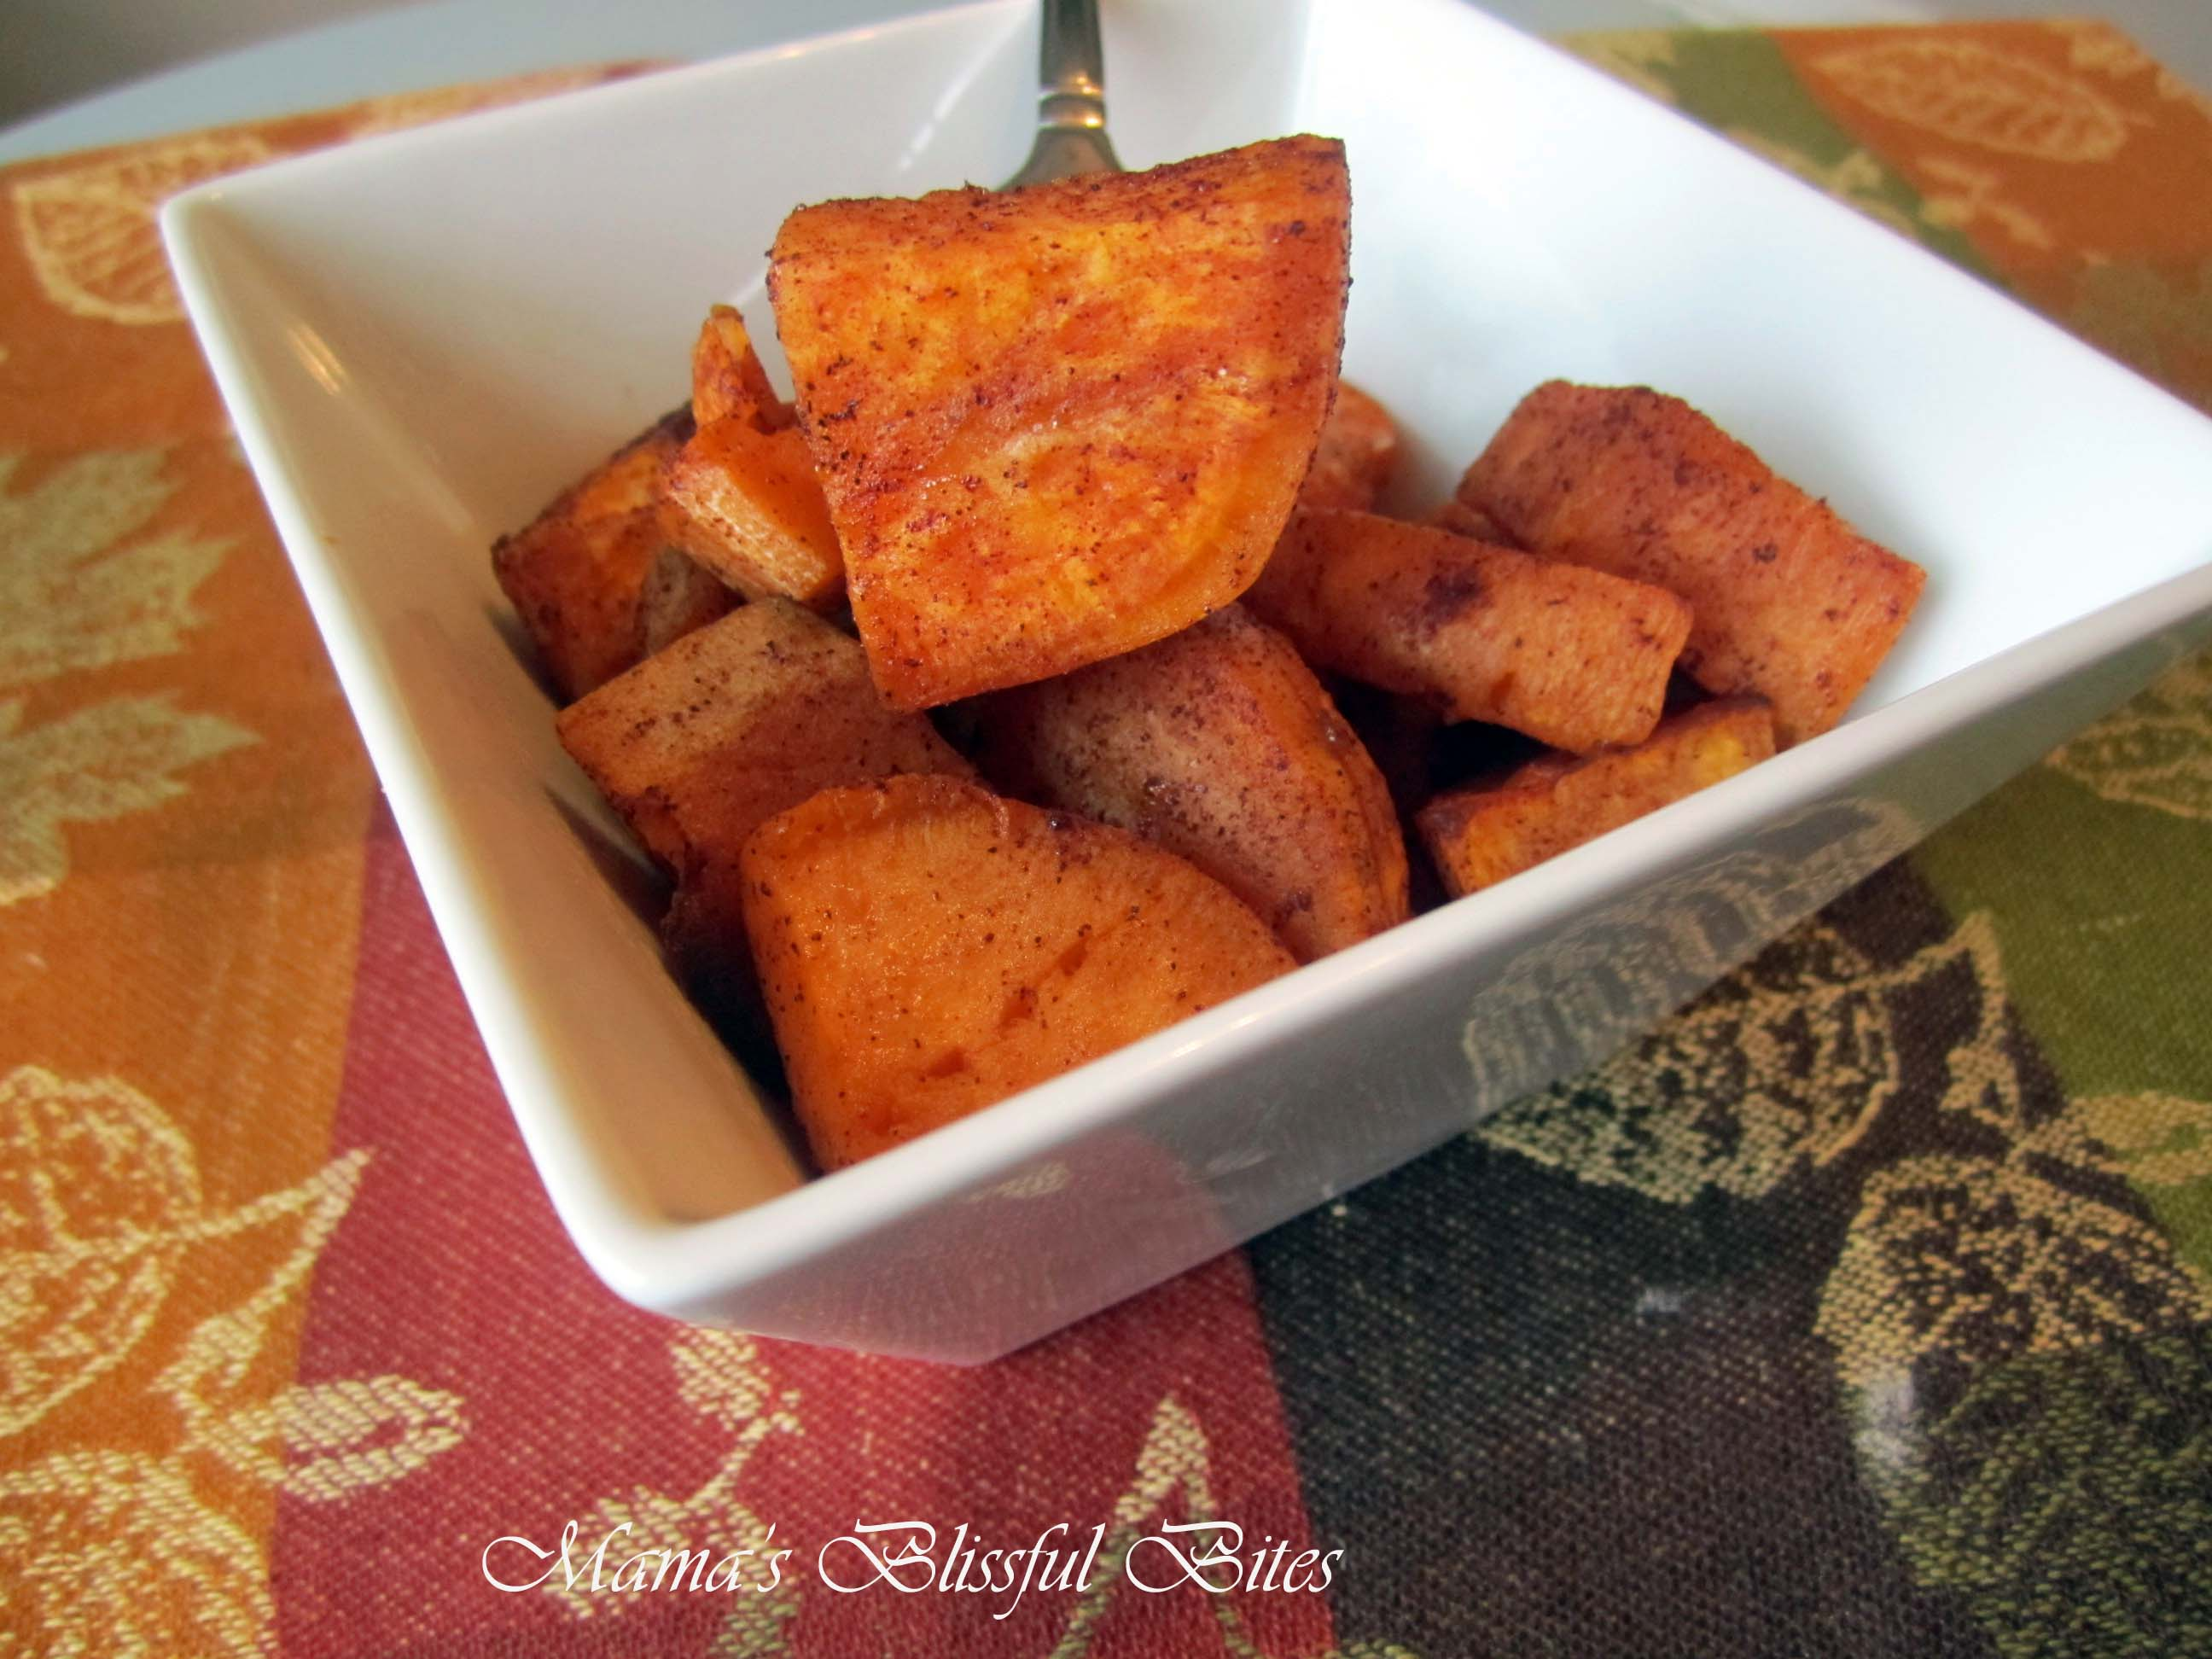 Sweet potato and cinnamon